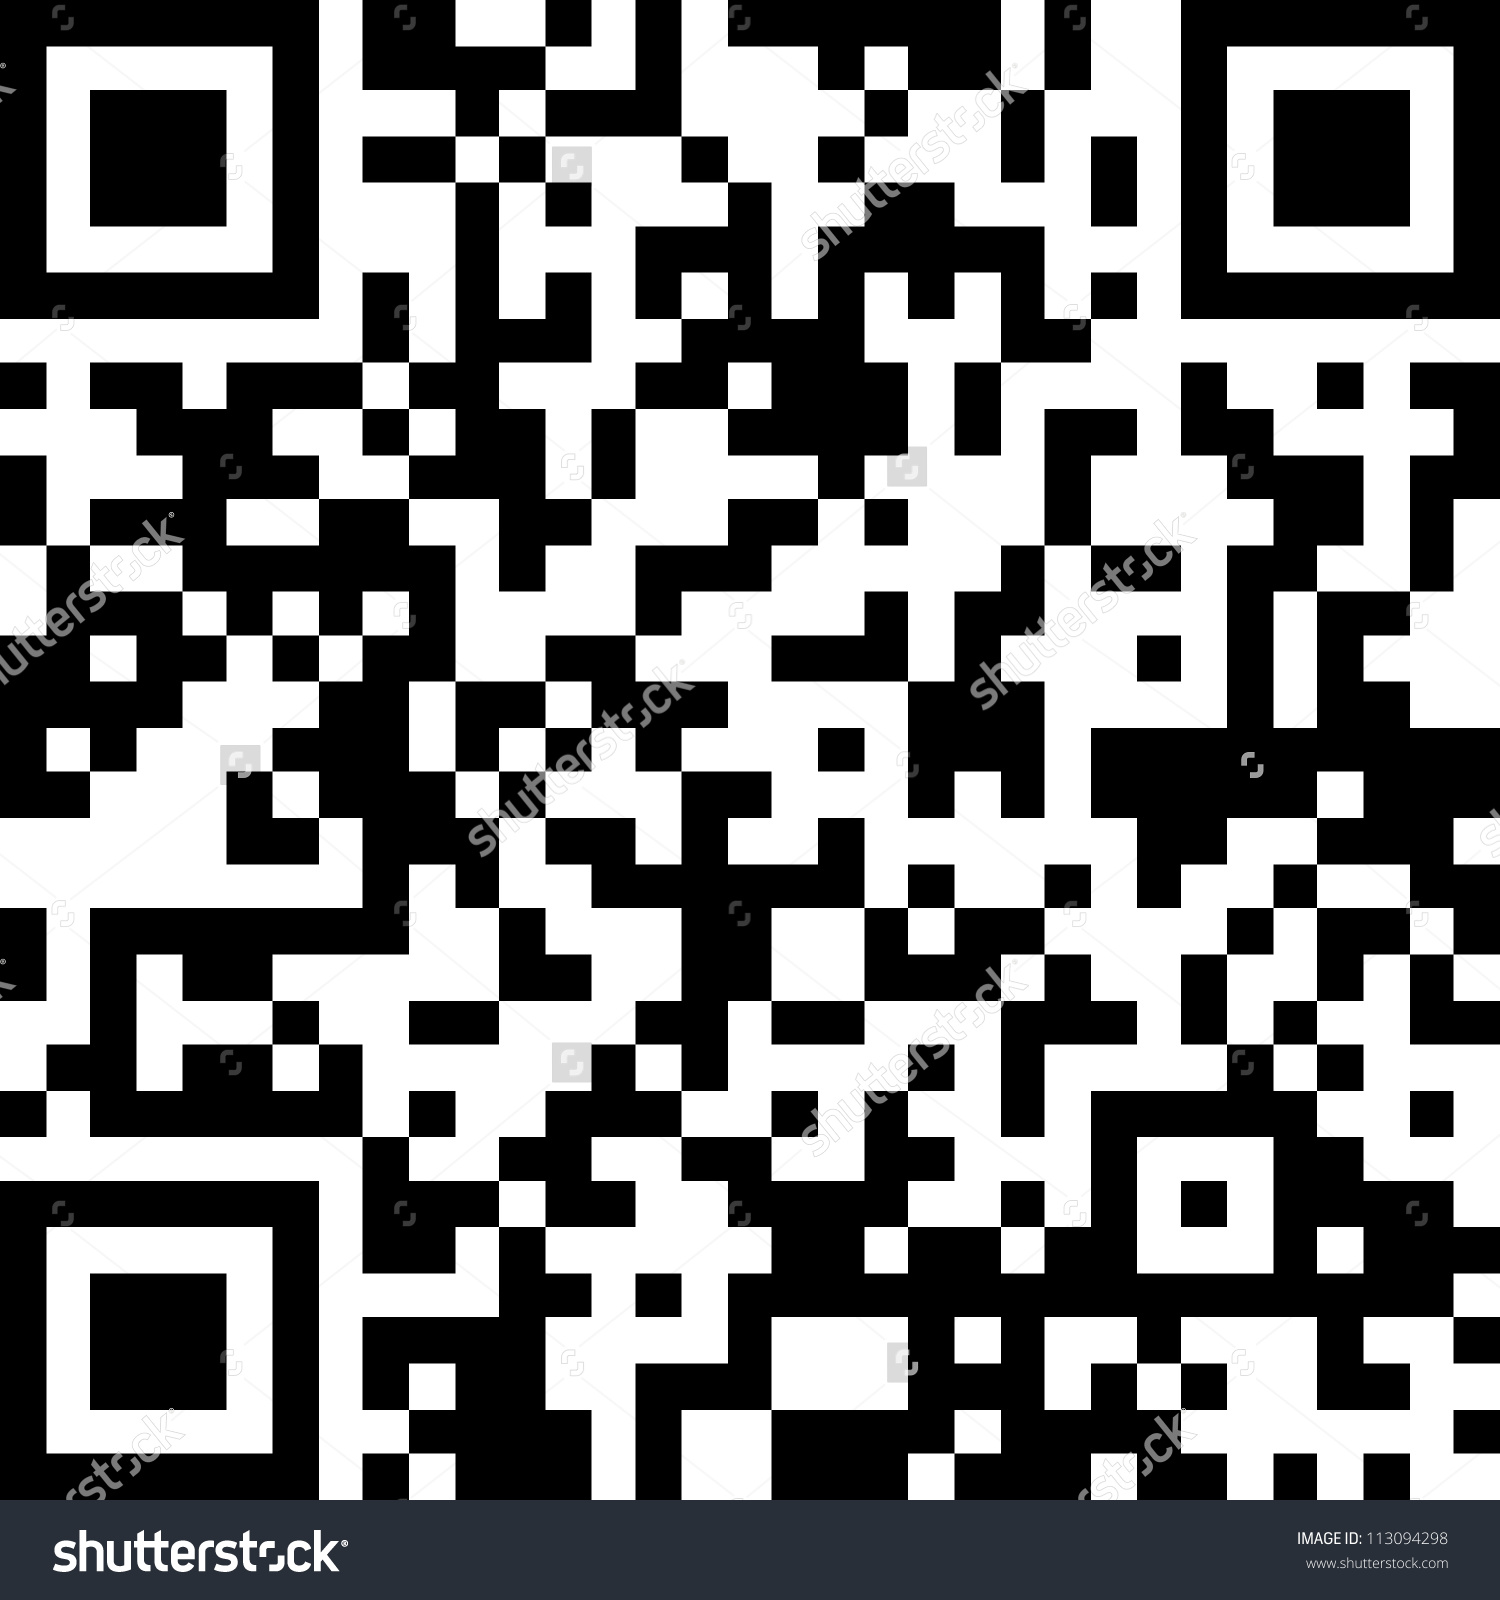 New Technology Barcode Called Qr Code Stock Photo 113094298.